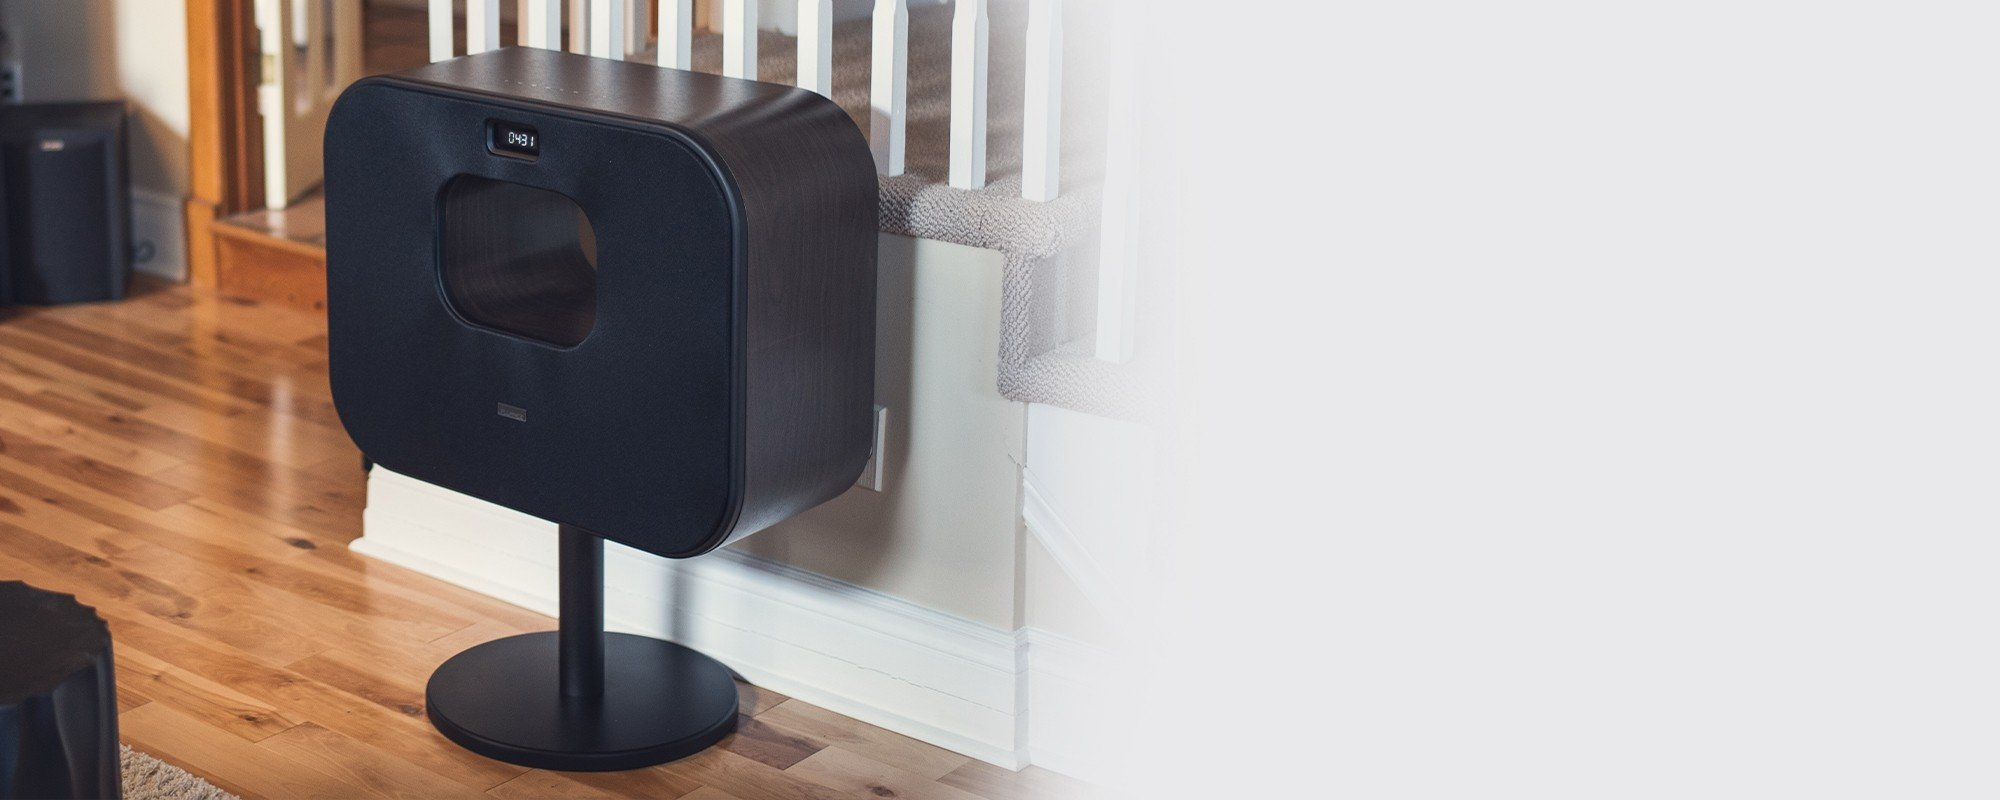 Fi70 Three-Way Wireless High Fidelity Music System - in front of stairs 2